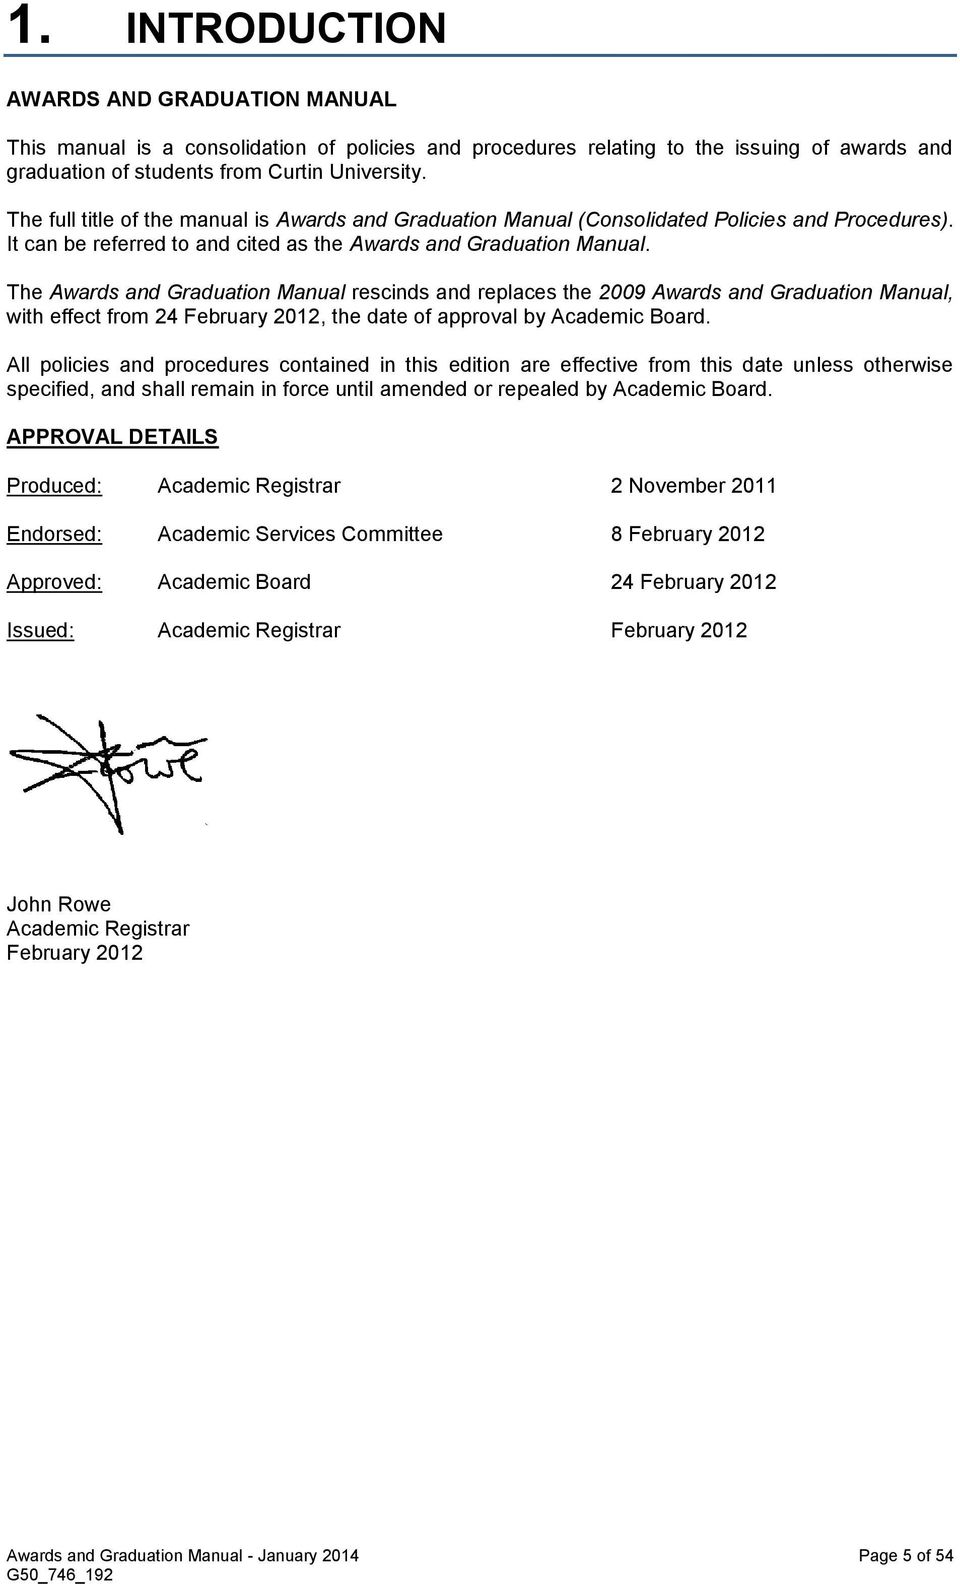 The Awards and Graduation Manual rescinds and replaces the 2009 Awards and Graduation Manual, with effect from 24 February 2012, the date of approval by Academic Board.